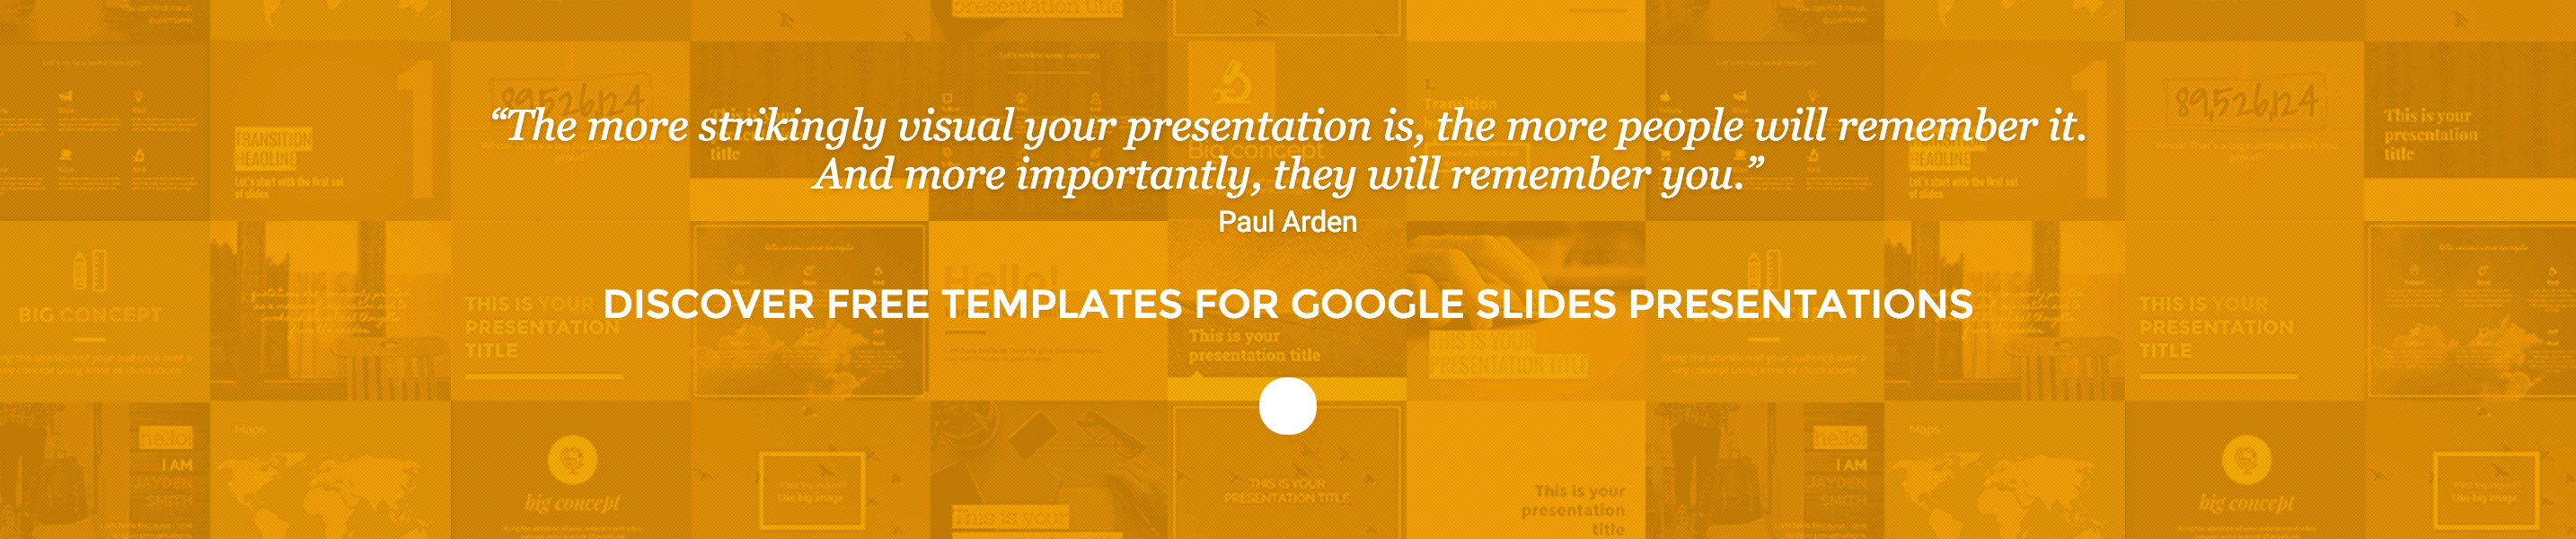 google slides templates tips and tools from the geier library